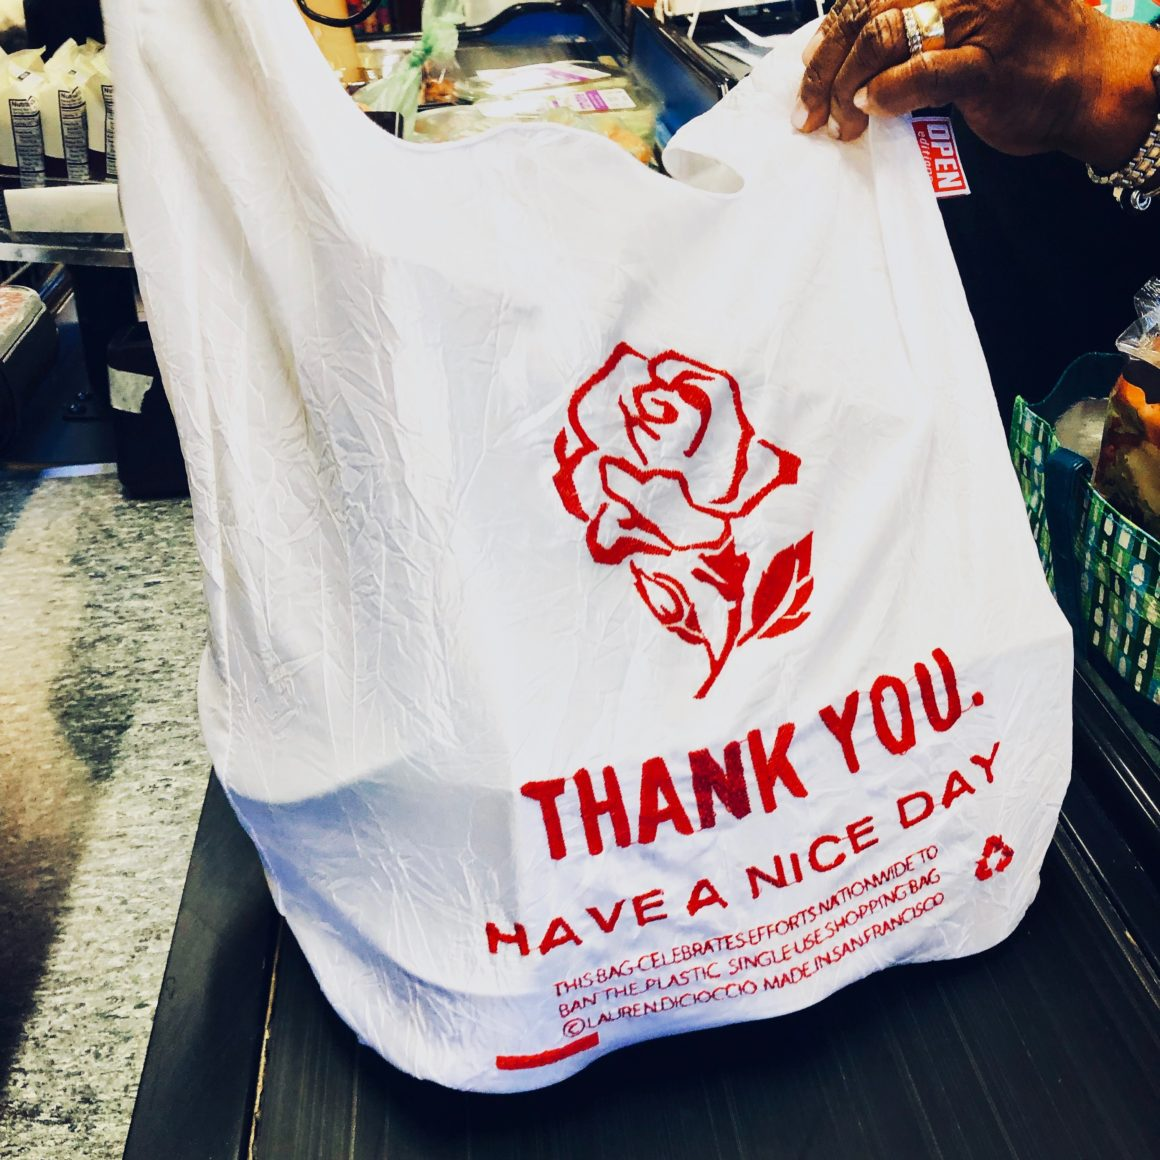 Plastic Bag Law Worries Your Top 7 Questions Answered